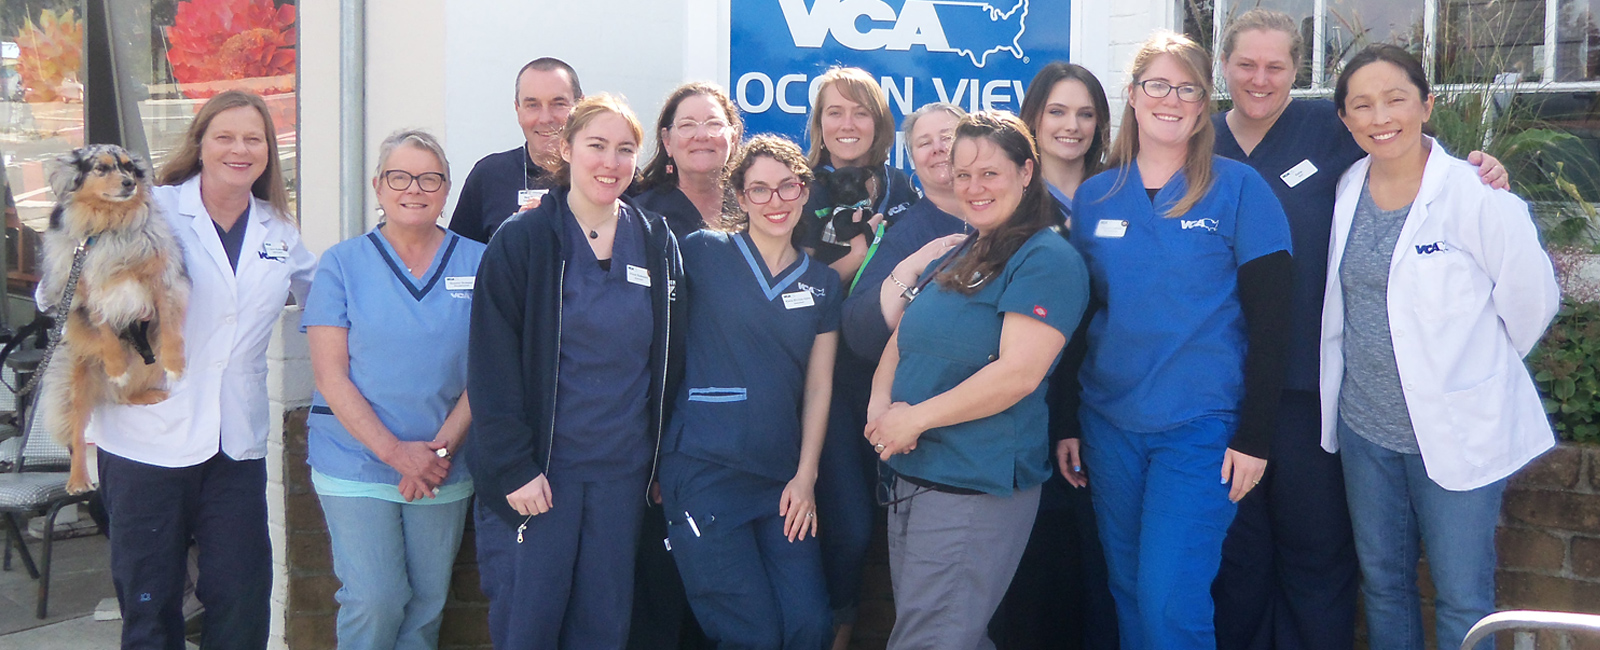 Team Picture of VCA Ocean View Animal Hospital